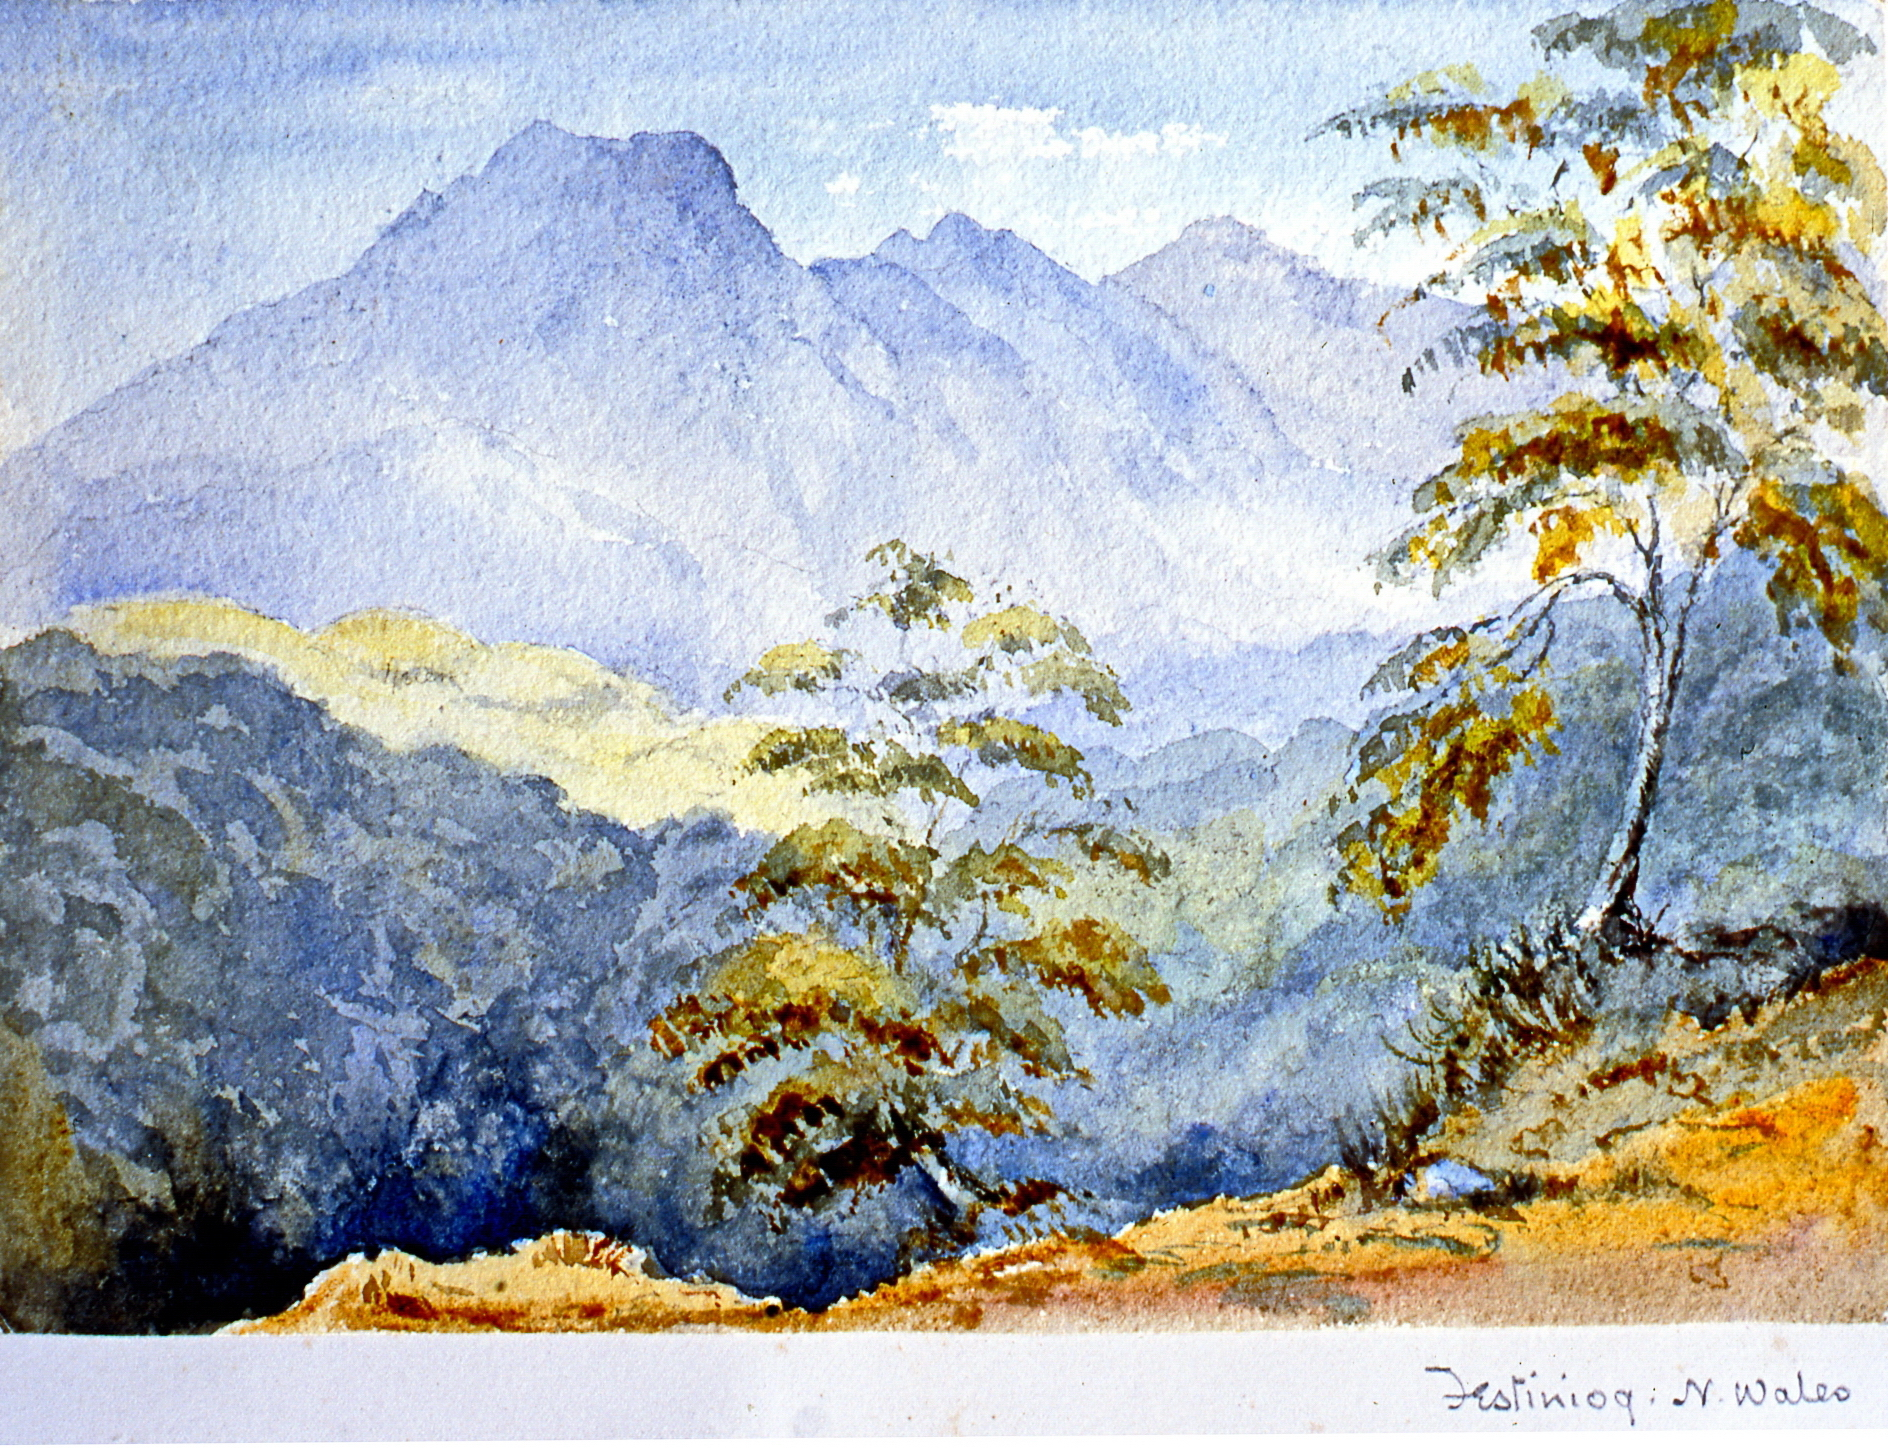 """Festiniog. N. Wales , n.d.,Julia Bullock Webster, watercolour on paper, 6 3/4""""x 9 3/4"""", 2003.02.56, gift of The Grist Mill at Keremeos"""